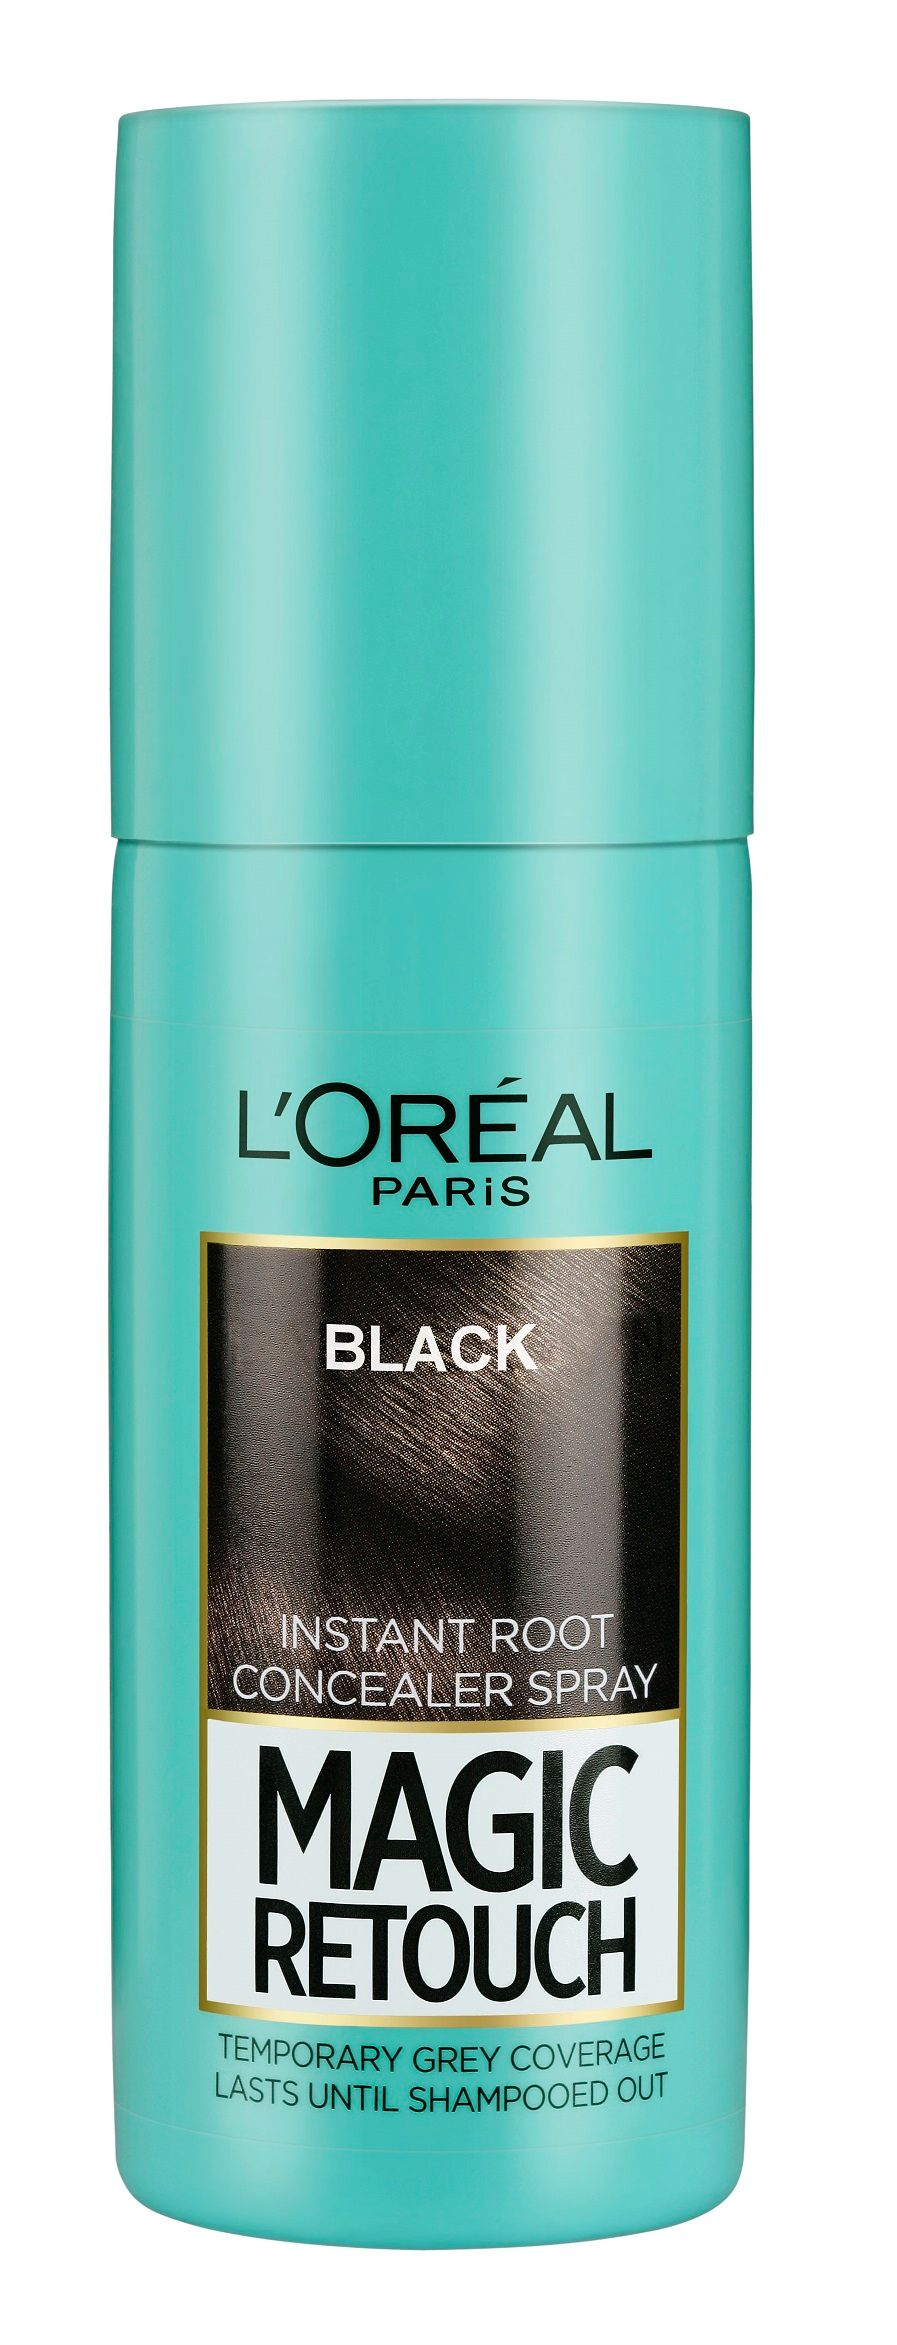 Loreal Paris Magic Retouch Instant Root Concealer - 1 Black, 75ml